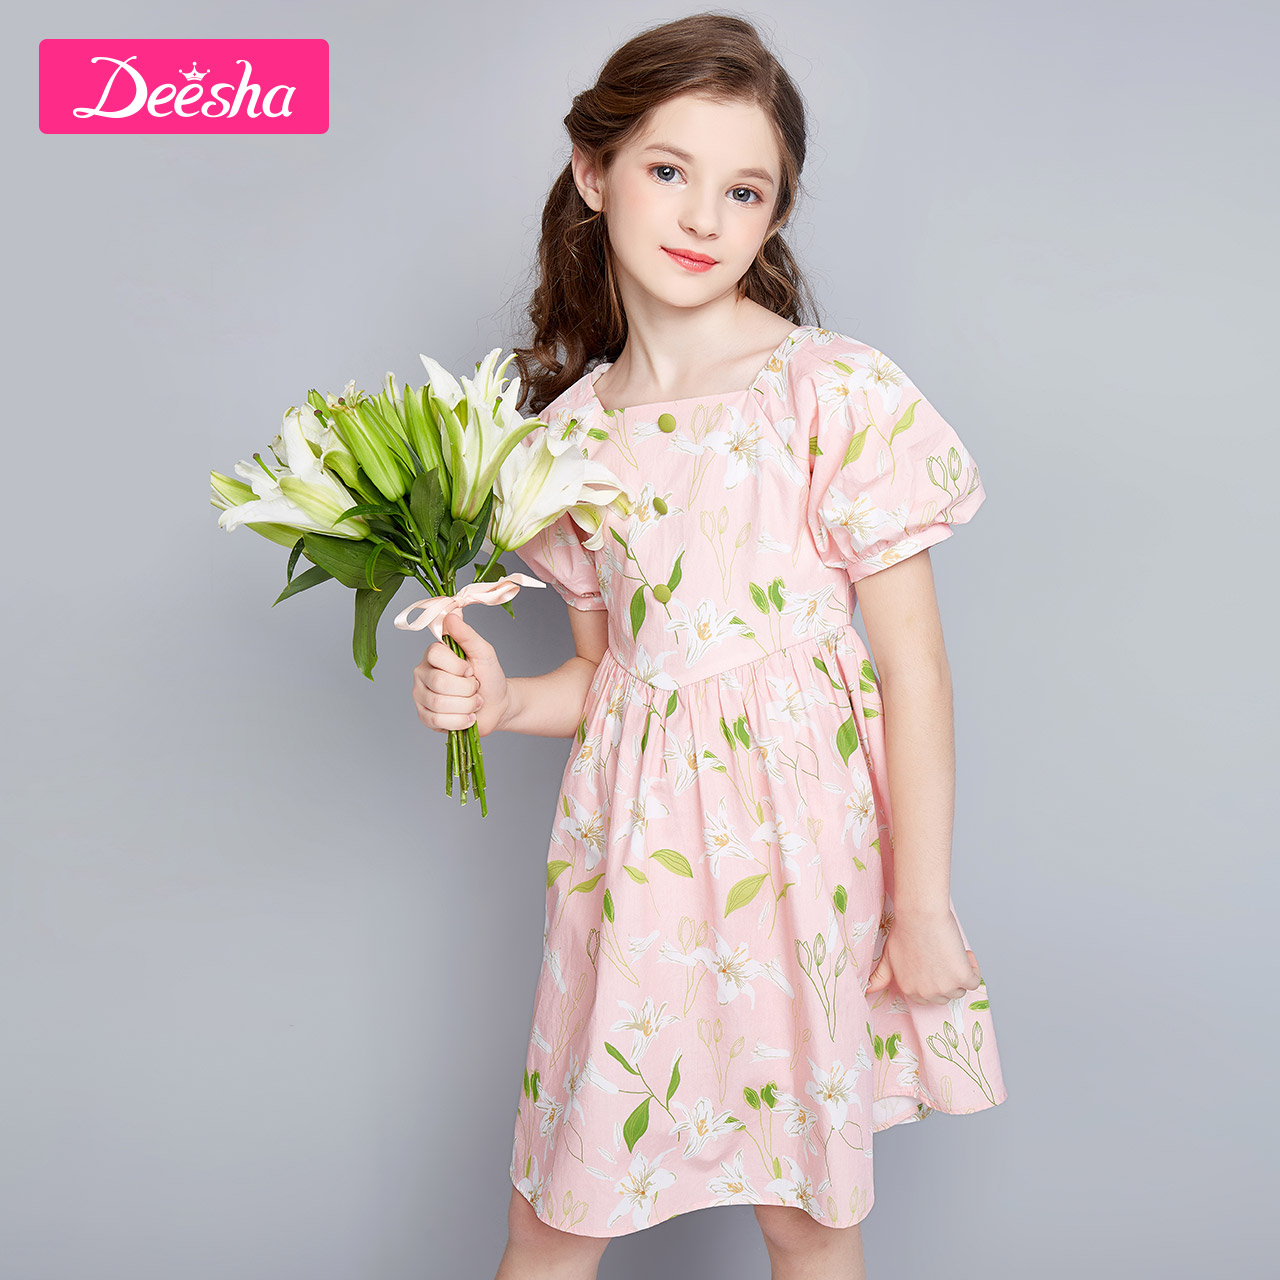 Desa children's dress girl's dress summer dress 2020 new style children's Princess Dress bubble sleeve children's dress